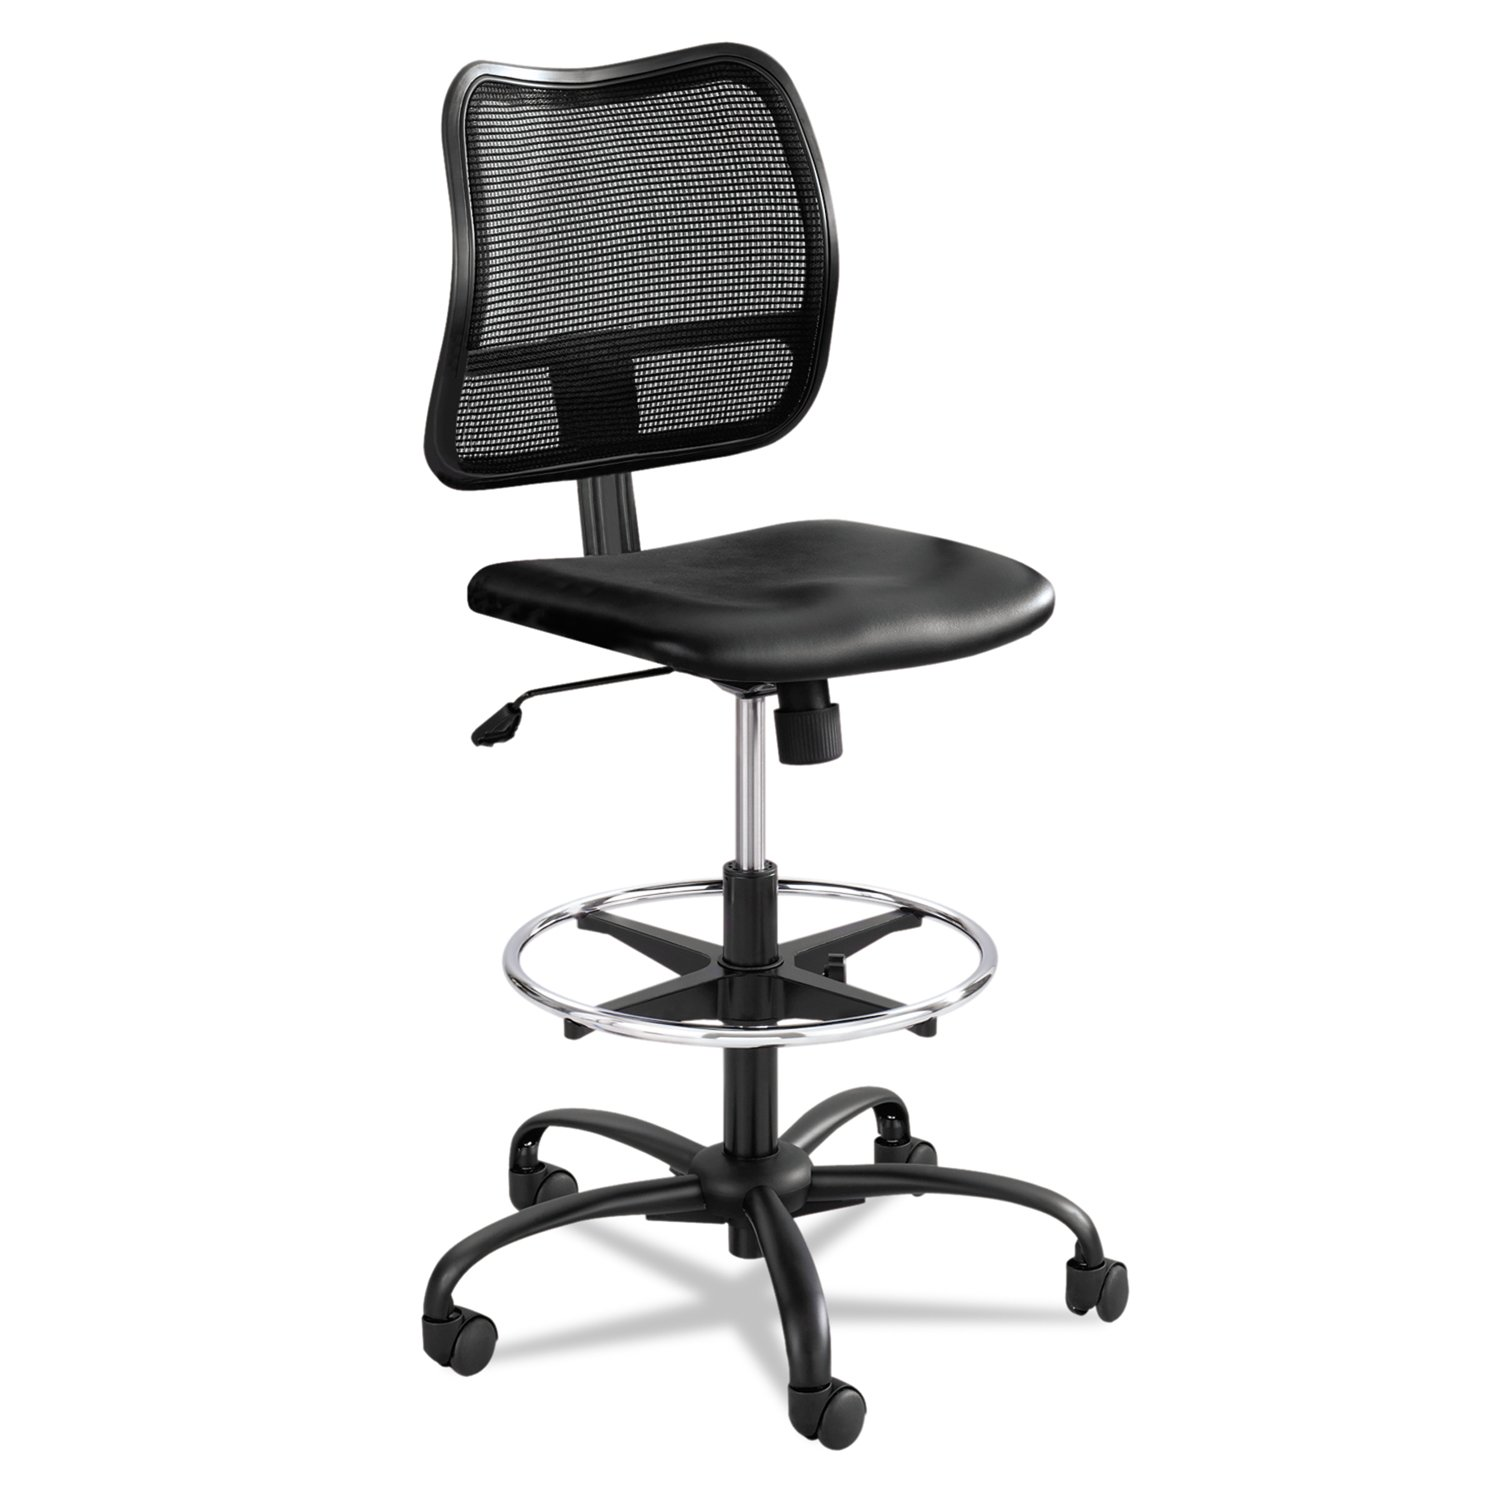 100 Black Stool With Back Chair Boss Black  : 716AU8CWxELSL1500 from tenacityesports.com size 1500 x 1500 jpeg 137kB